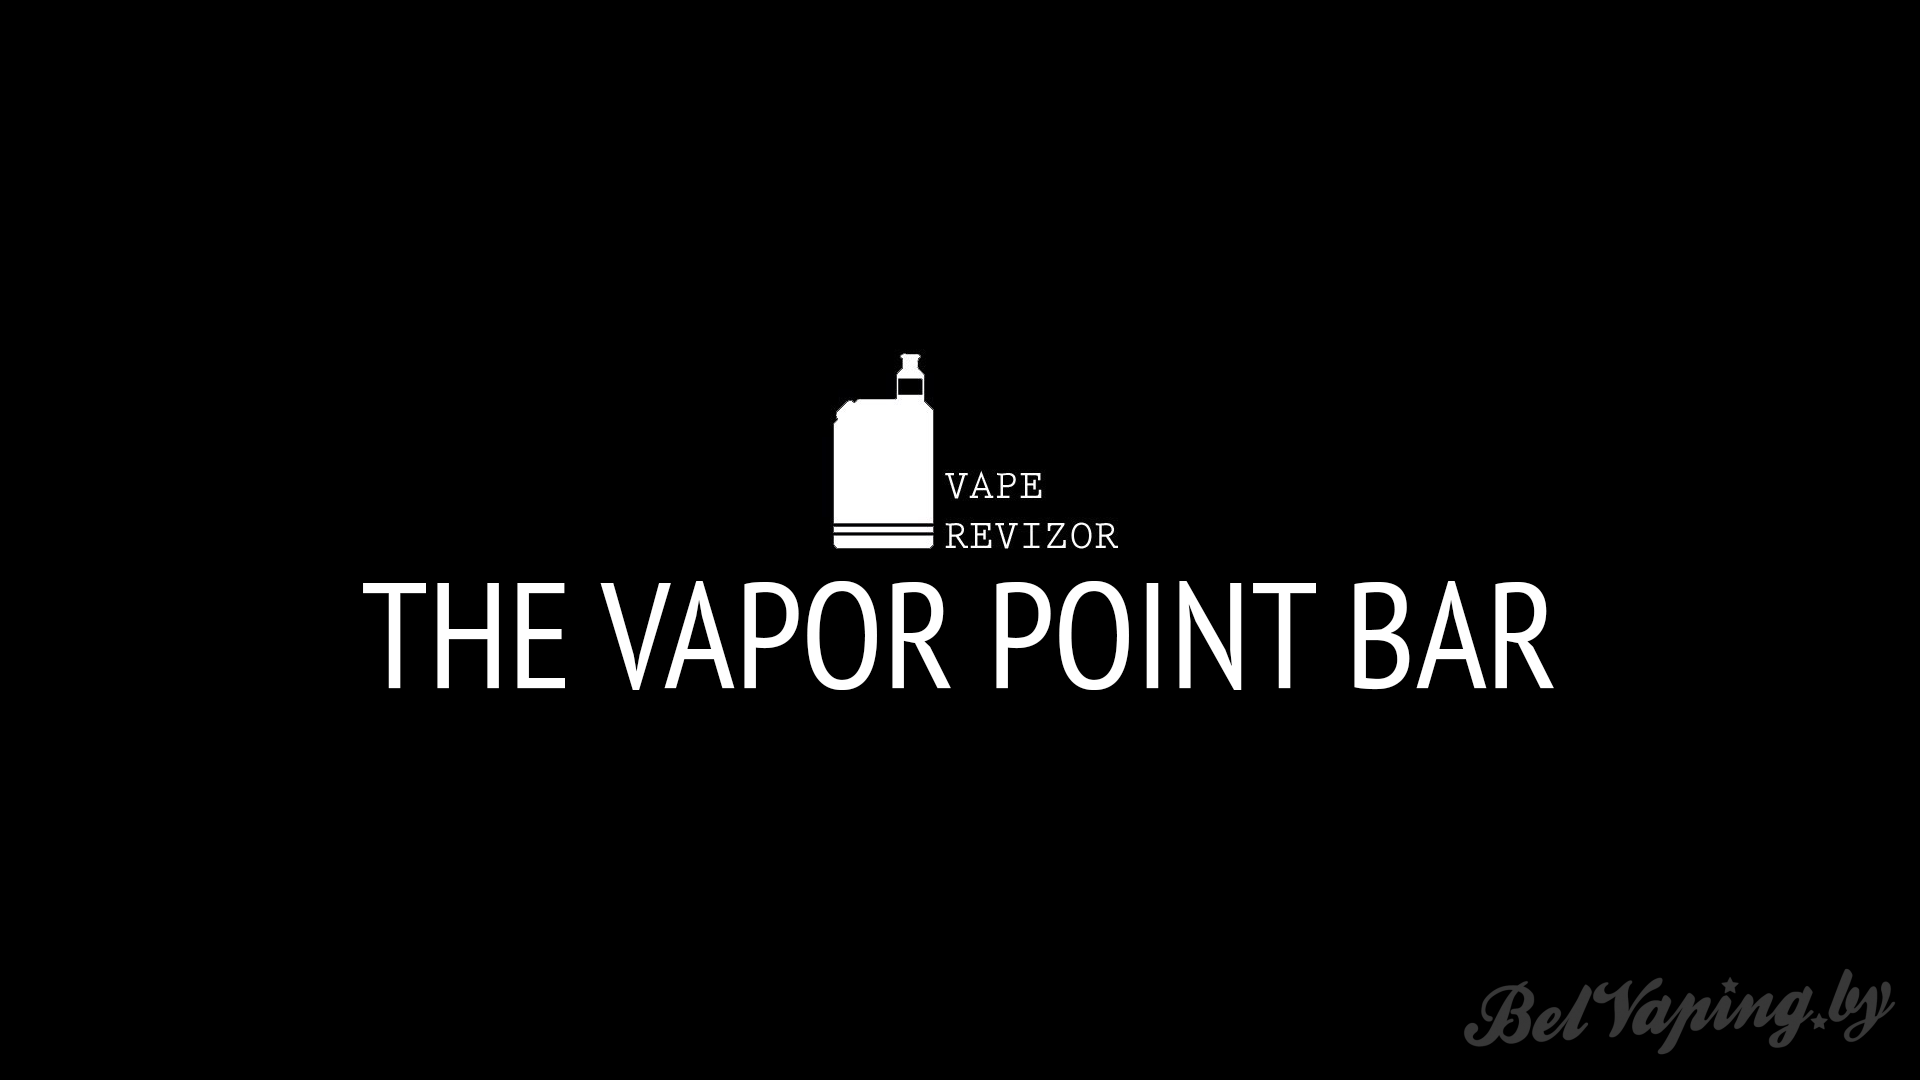 Vape Revizor: The Vapor Point Bar